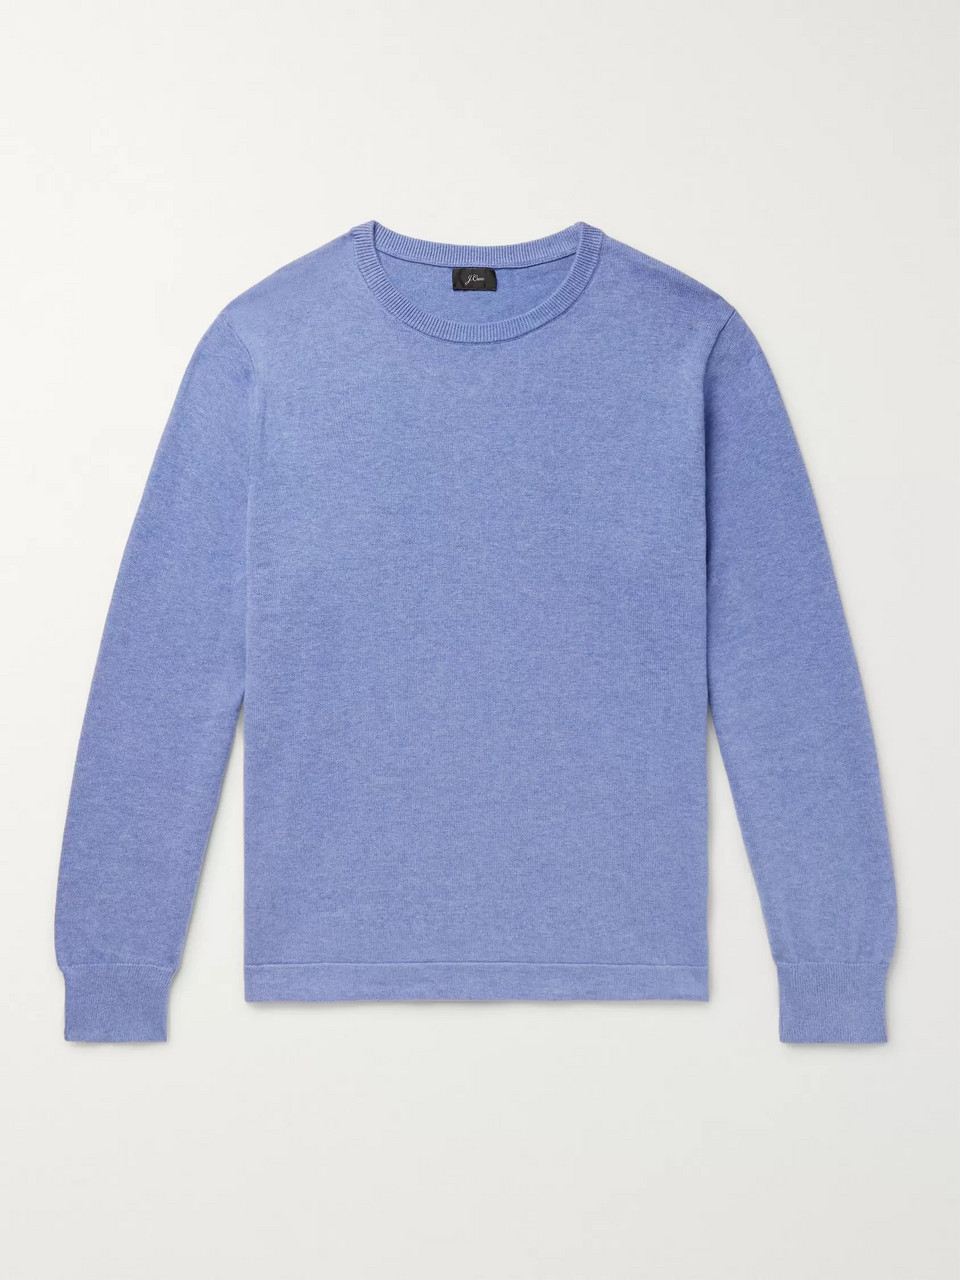 J.Crew Cotton Sweater